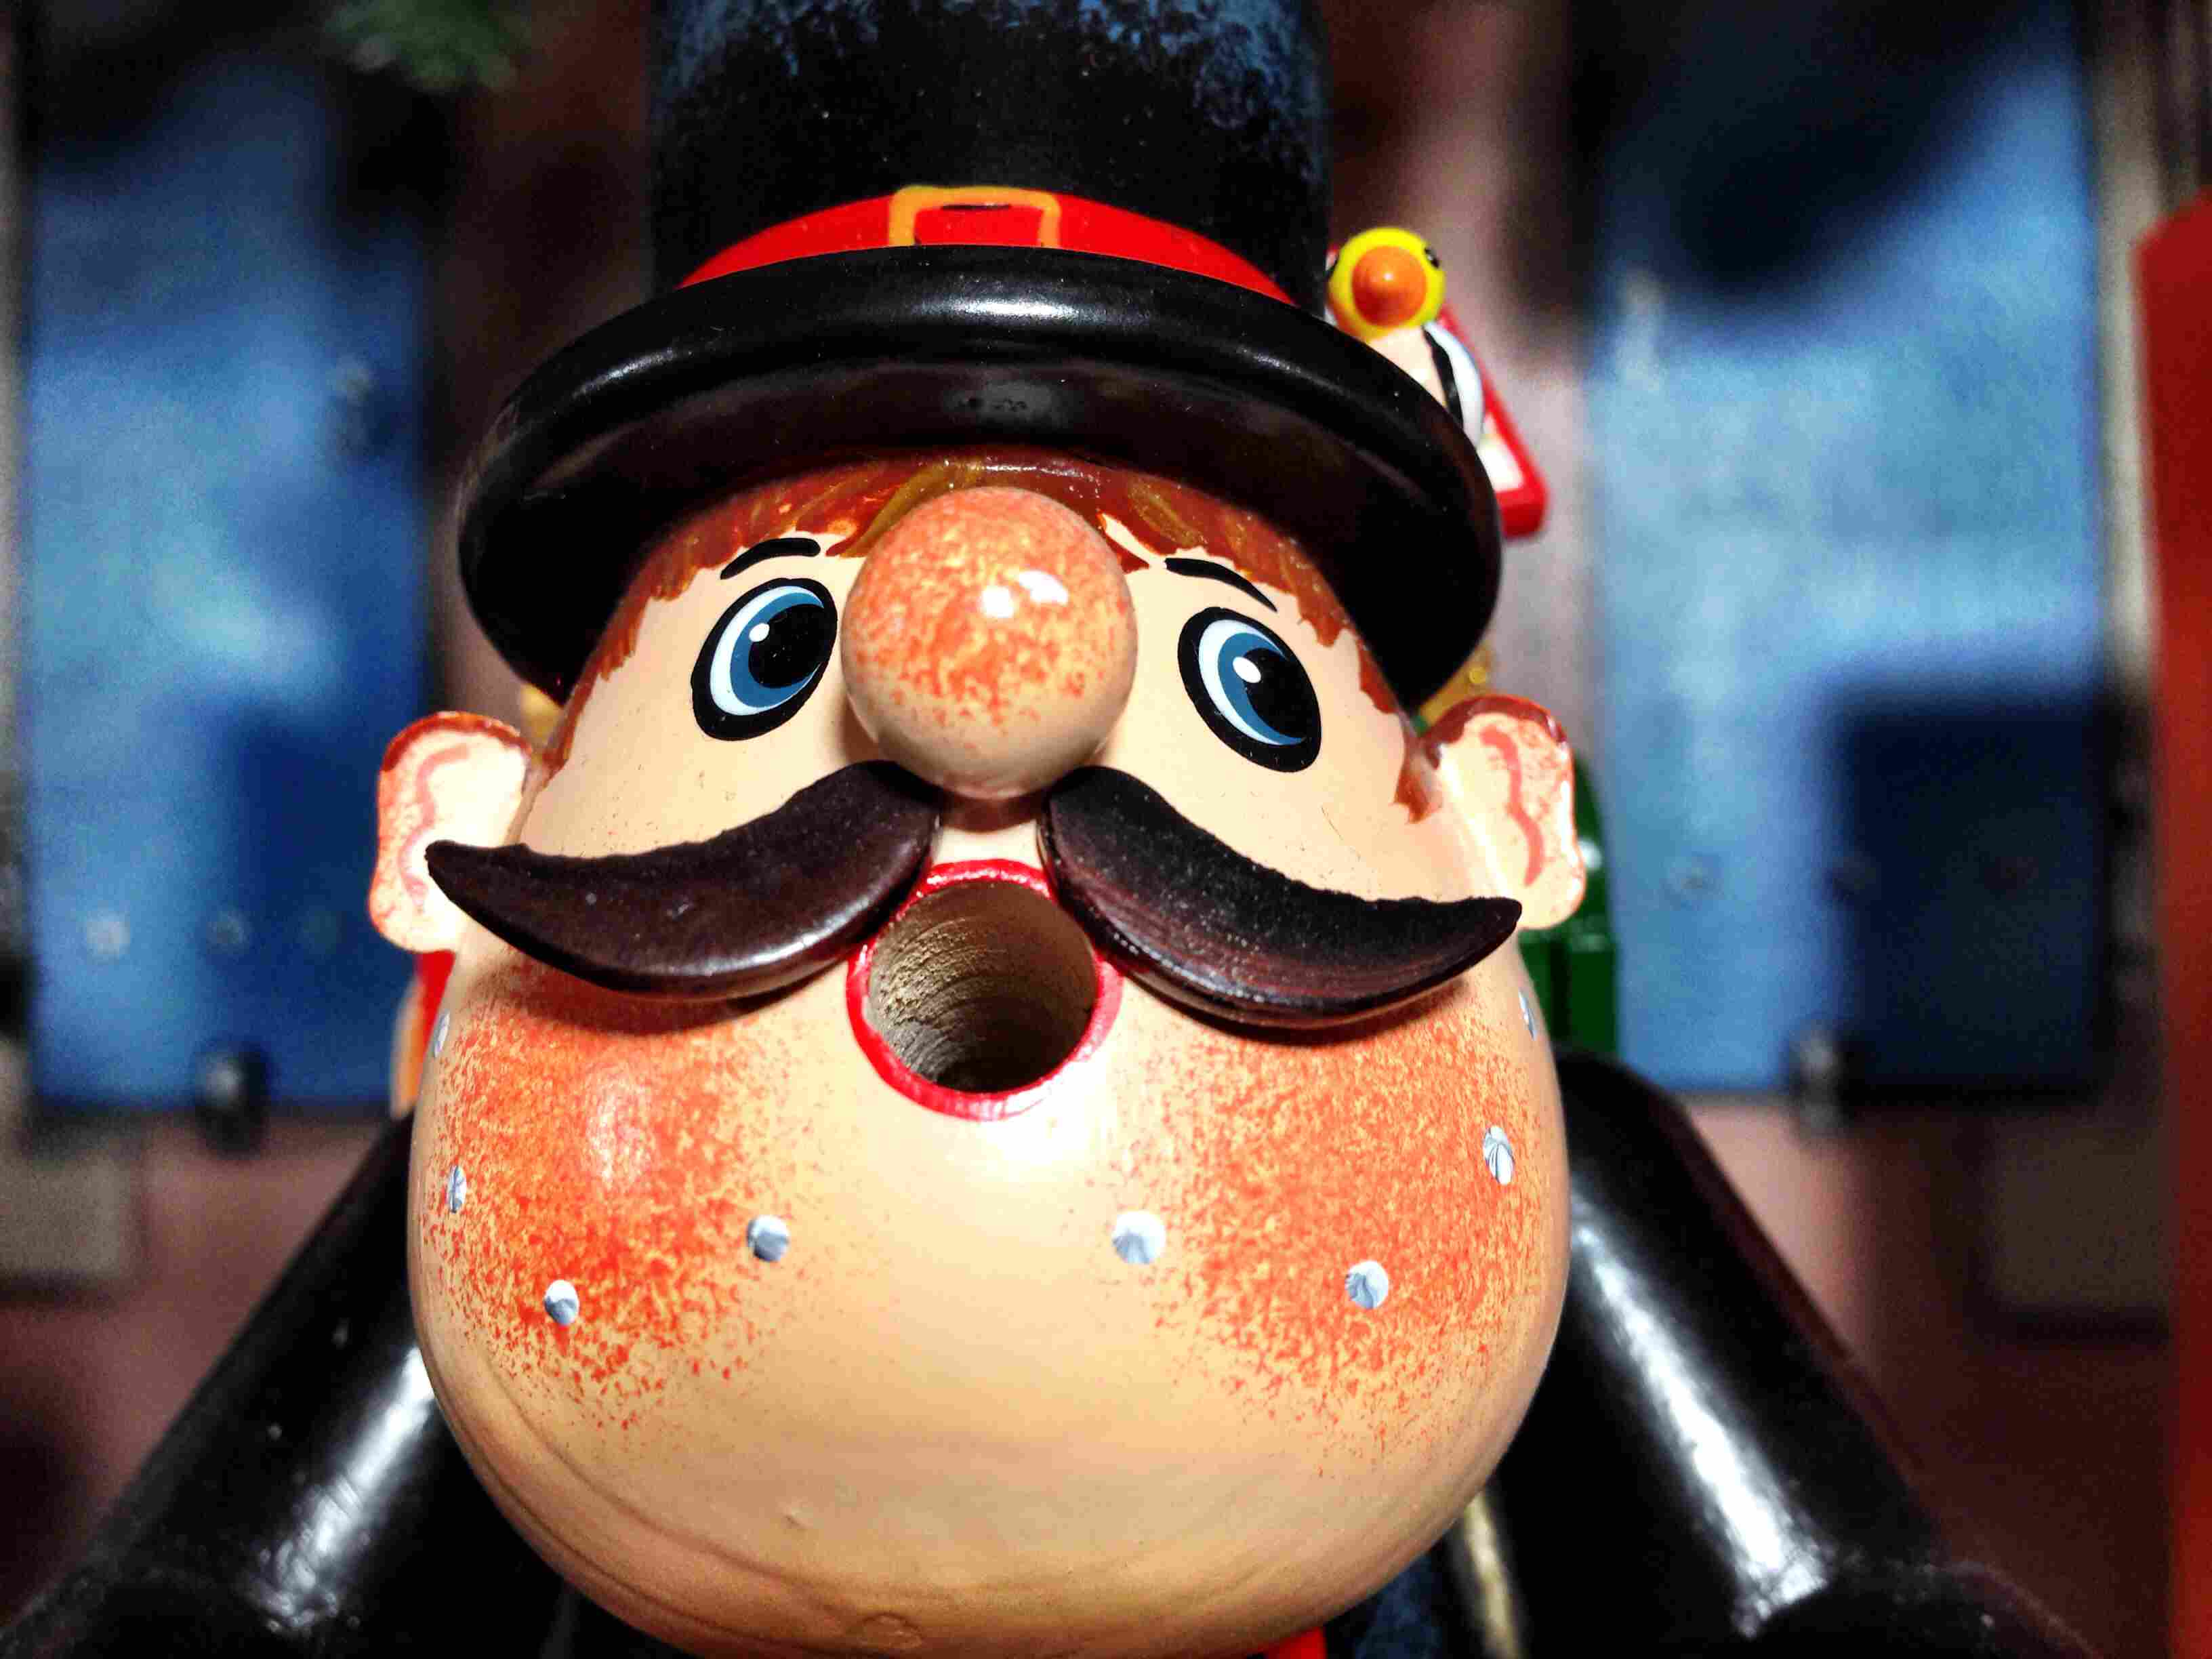 Wooden doll with top hat and mustache with a surprised face